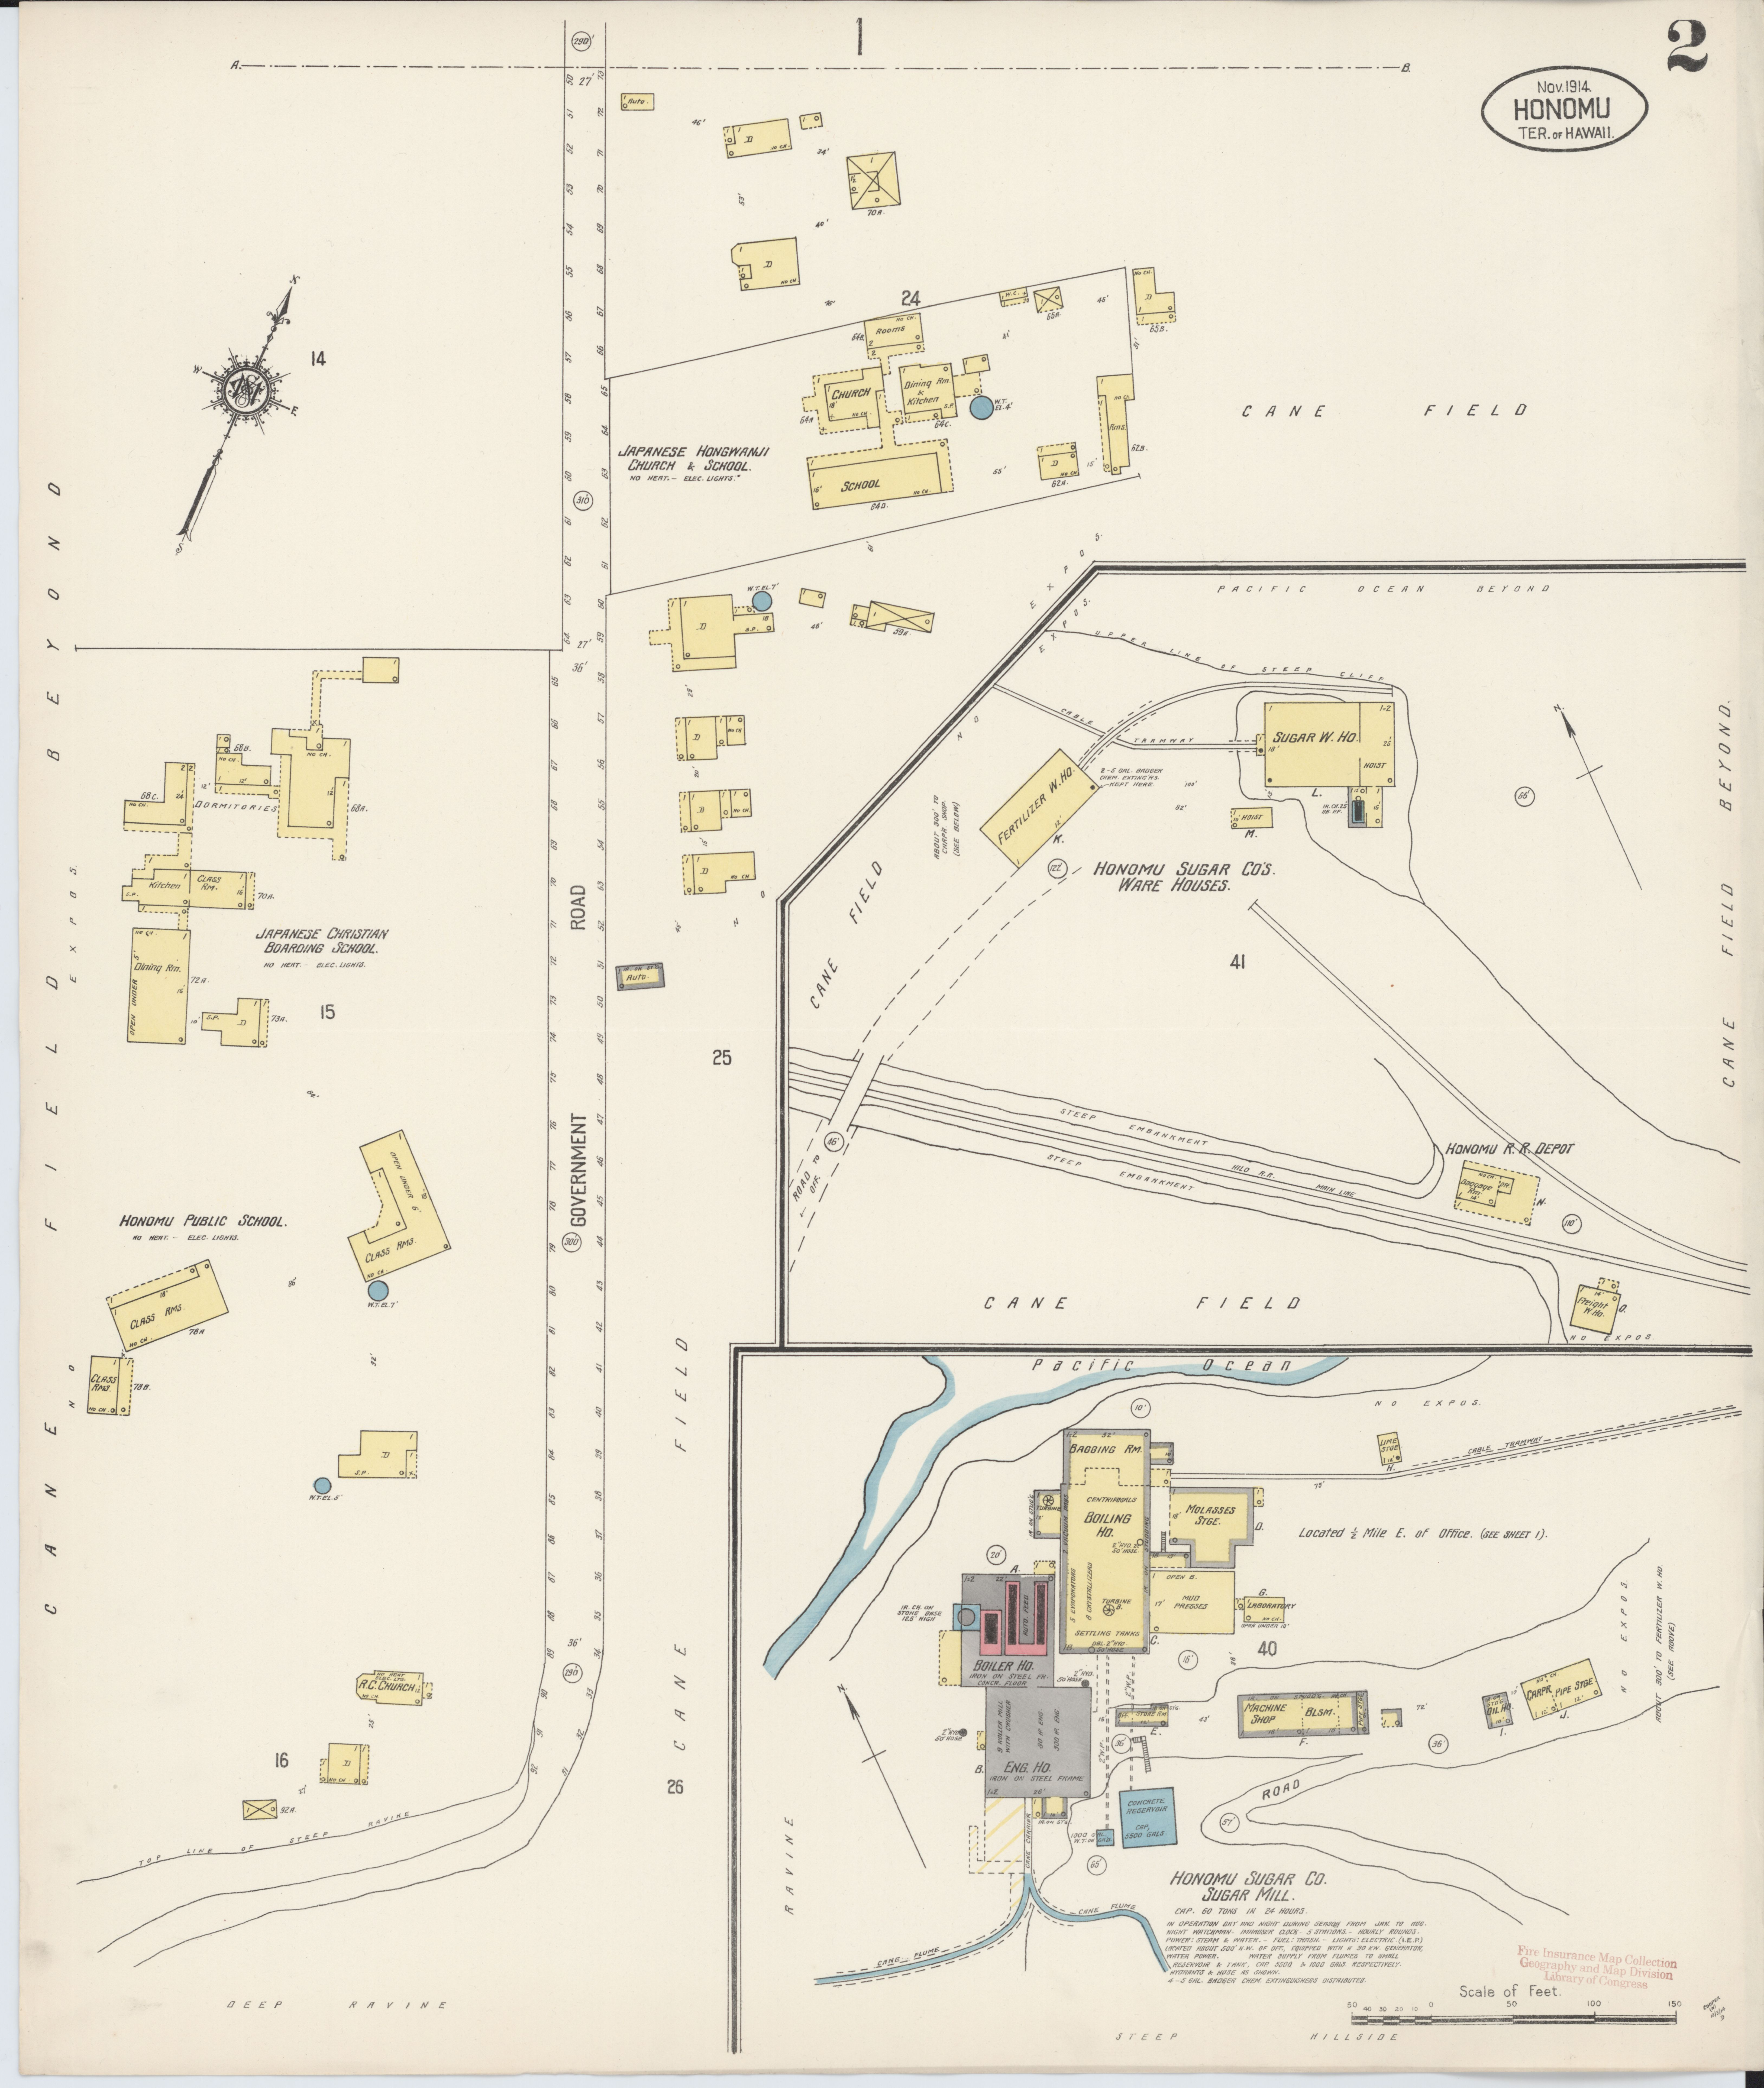 County Line 2 Fire Map.File Sanborn Fire Insurance Map From Honomu Hawaii County Hawaii